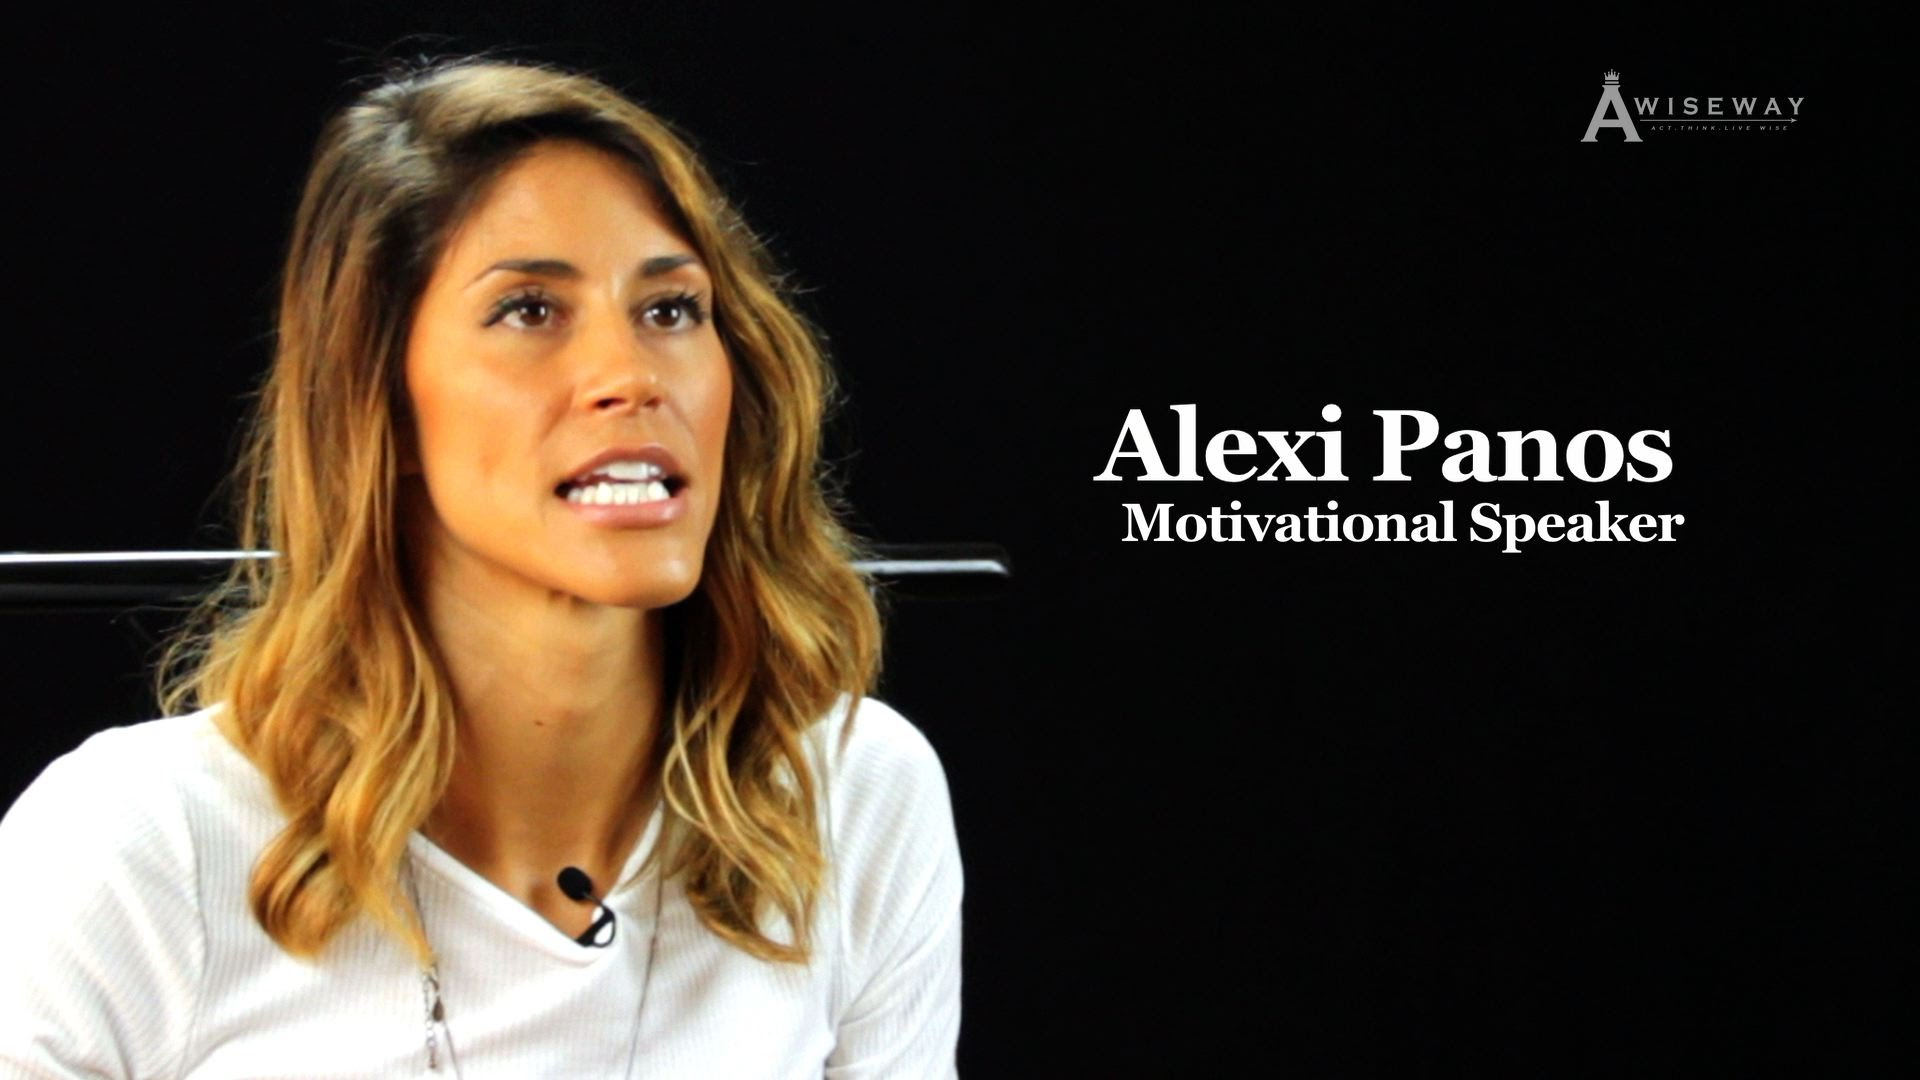 Alexi Panos Explains Why We Should Put Ourselves Before Our Work